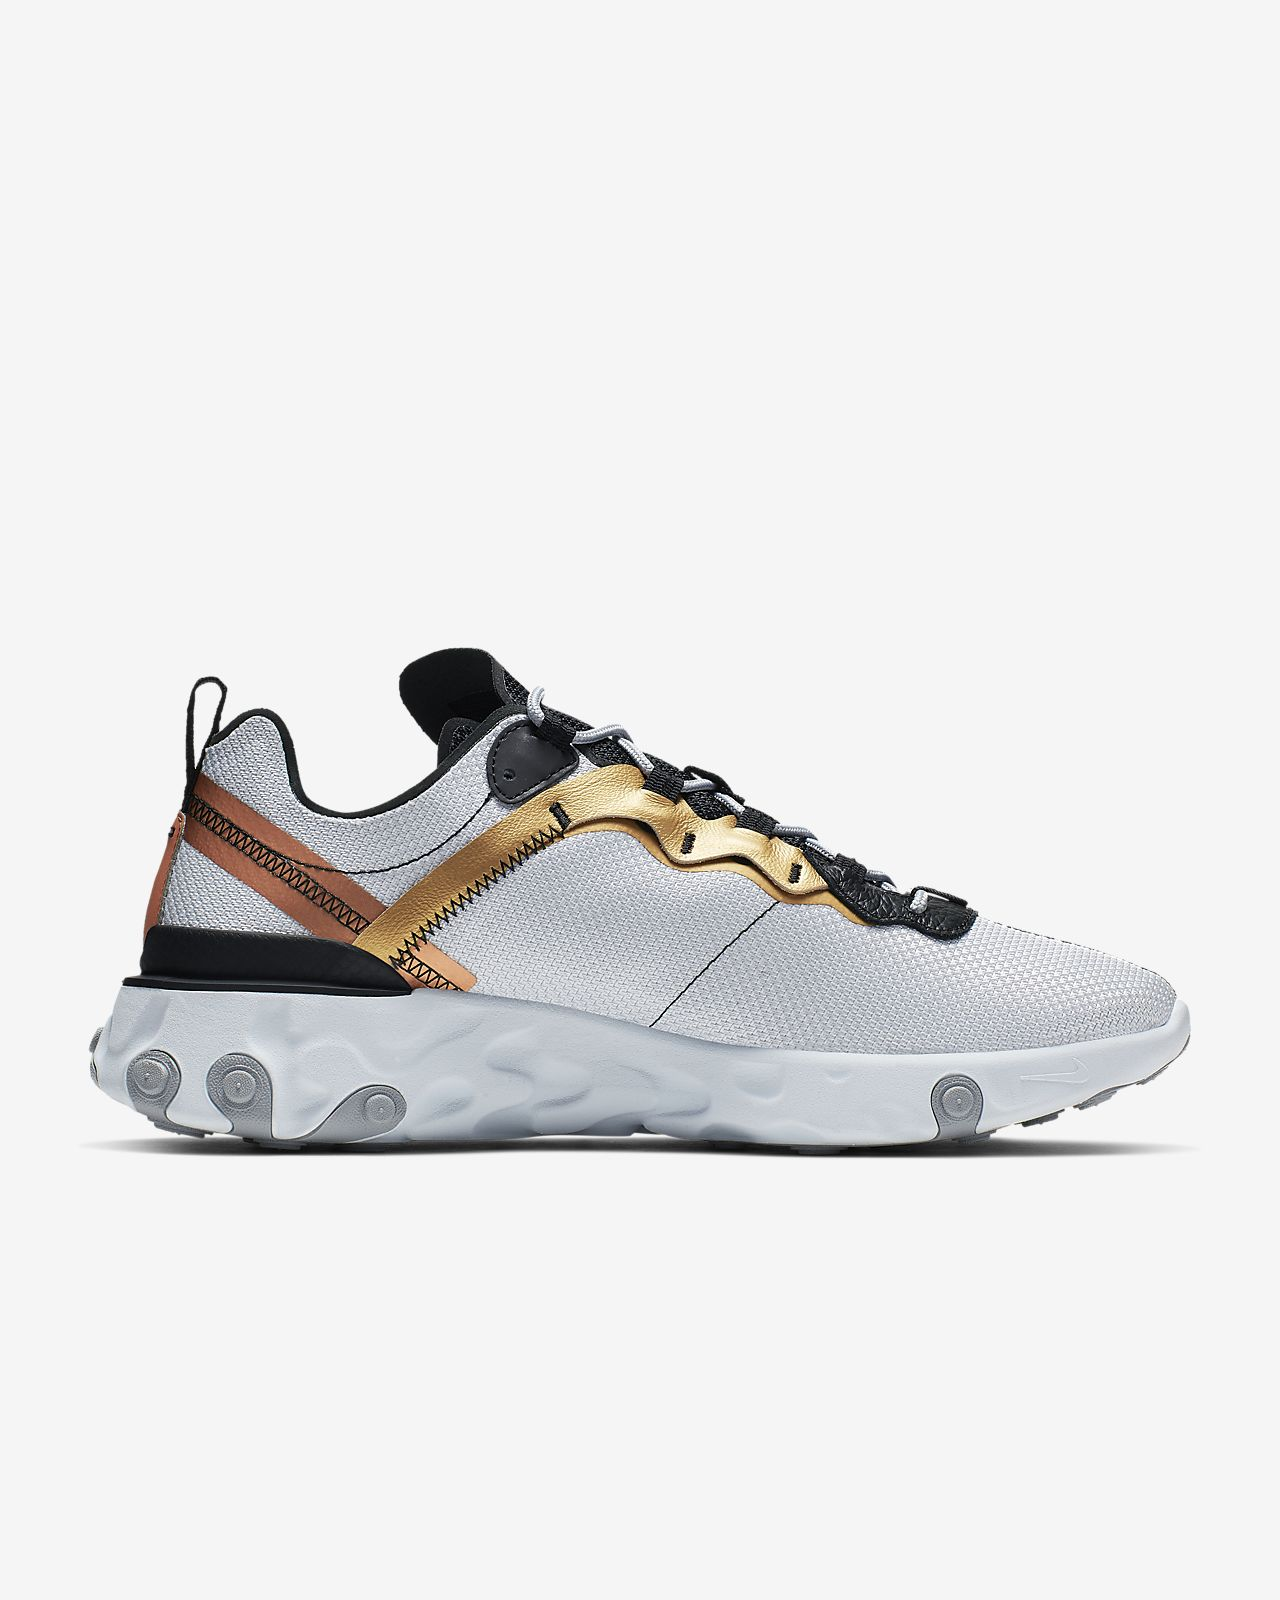 99c5ab75b6f31 Nike React Element 55 Men s Shoe. Nike.com